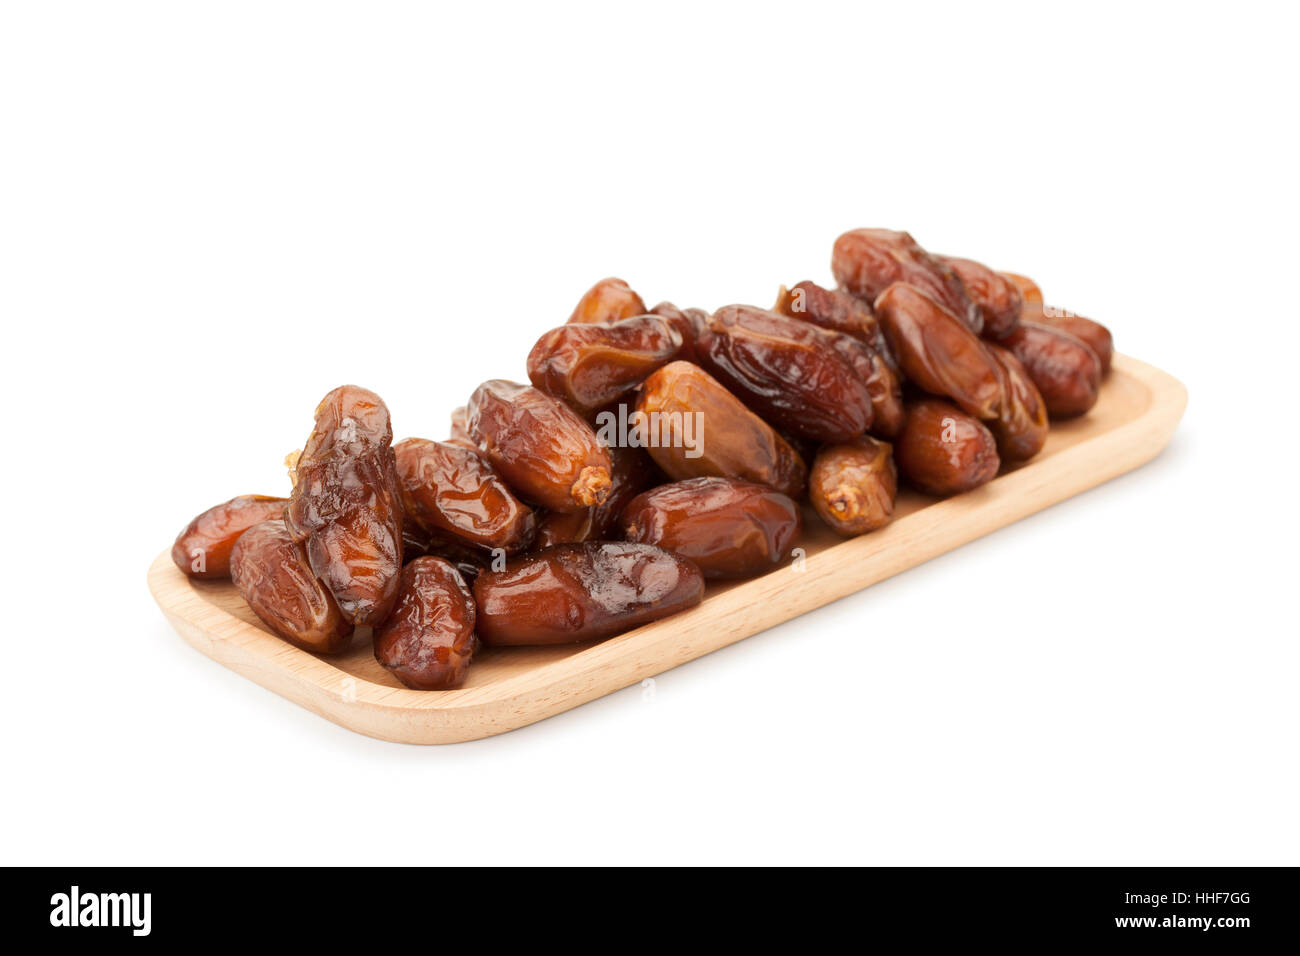 date palm dried fruit in wooden plate isolated on white background with clipping path - Stock Image